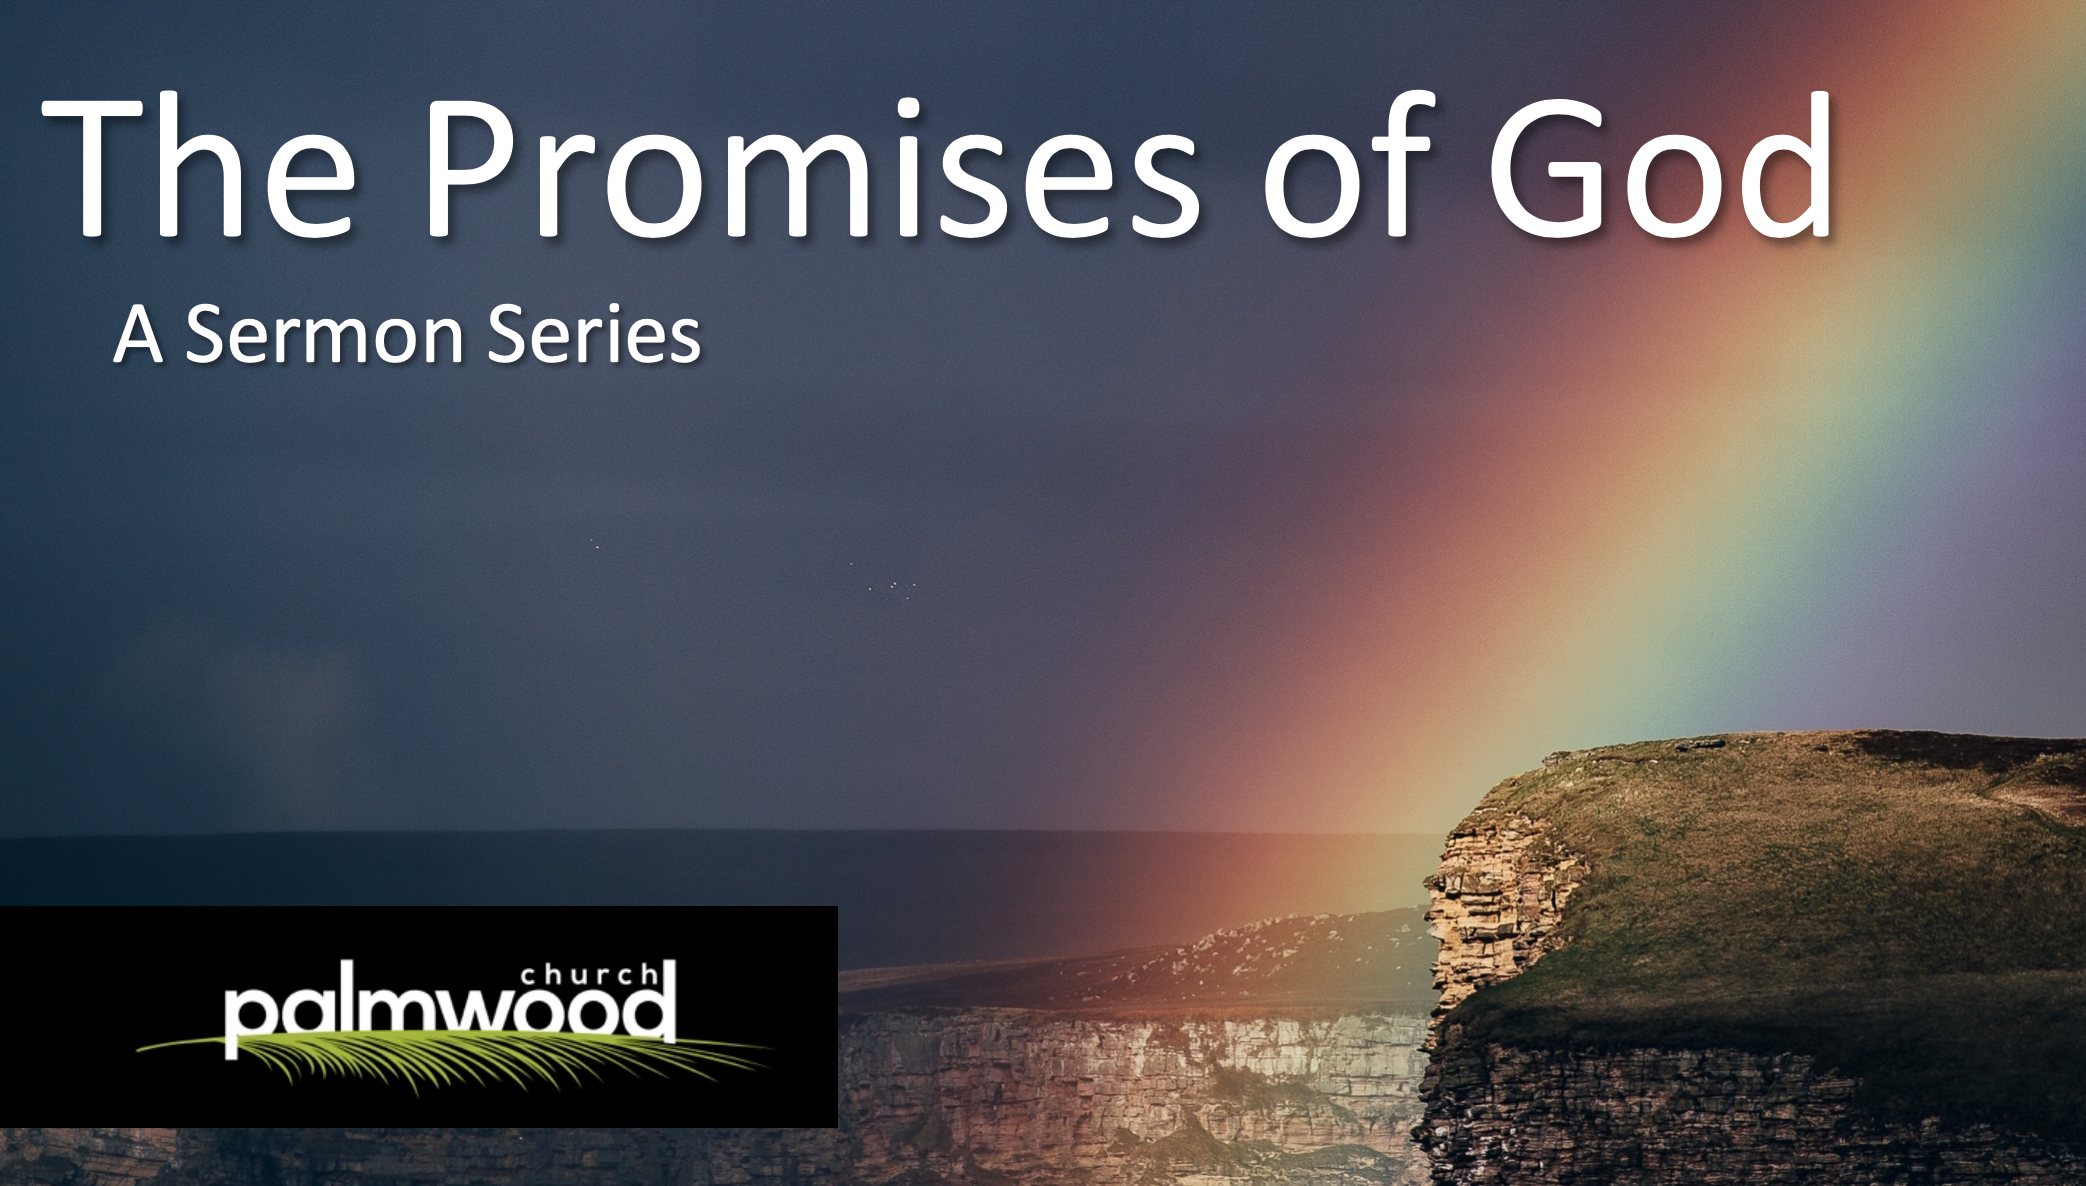 The Promises of God - An Introduction